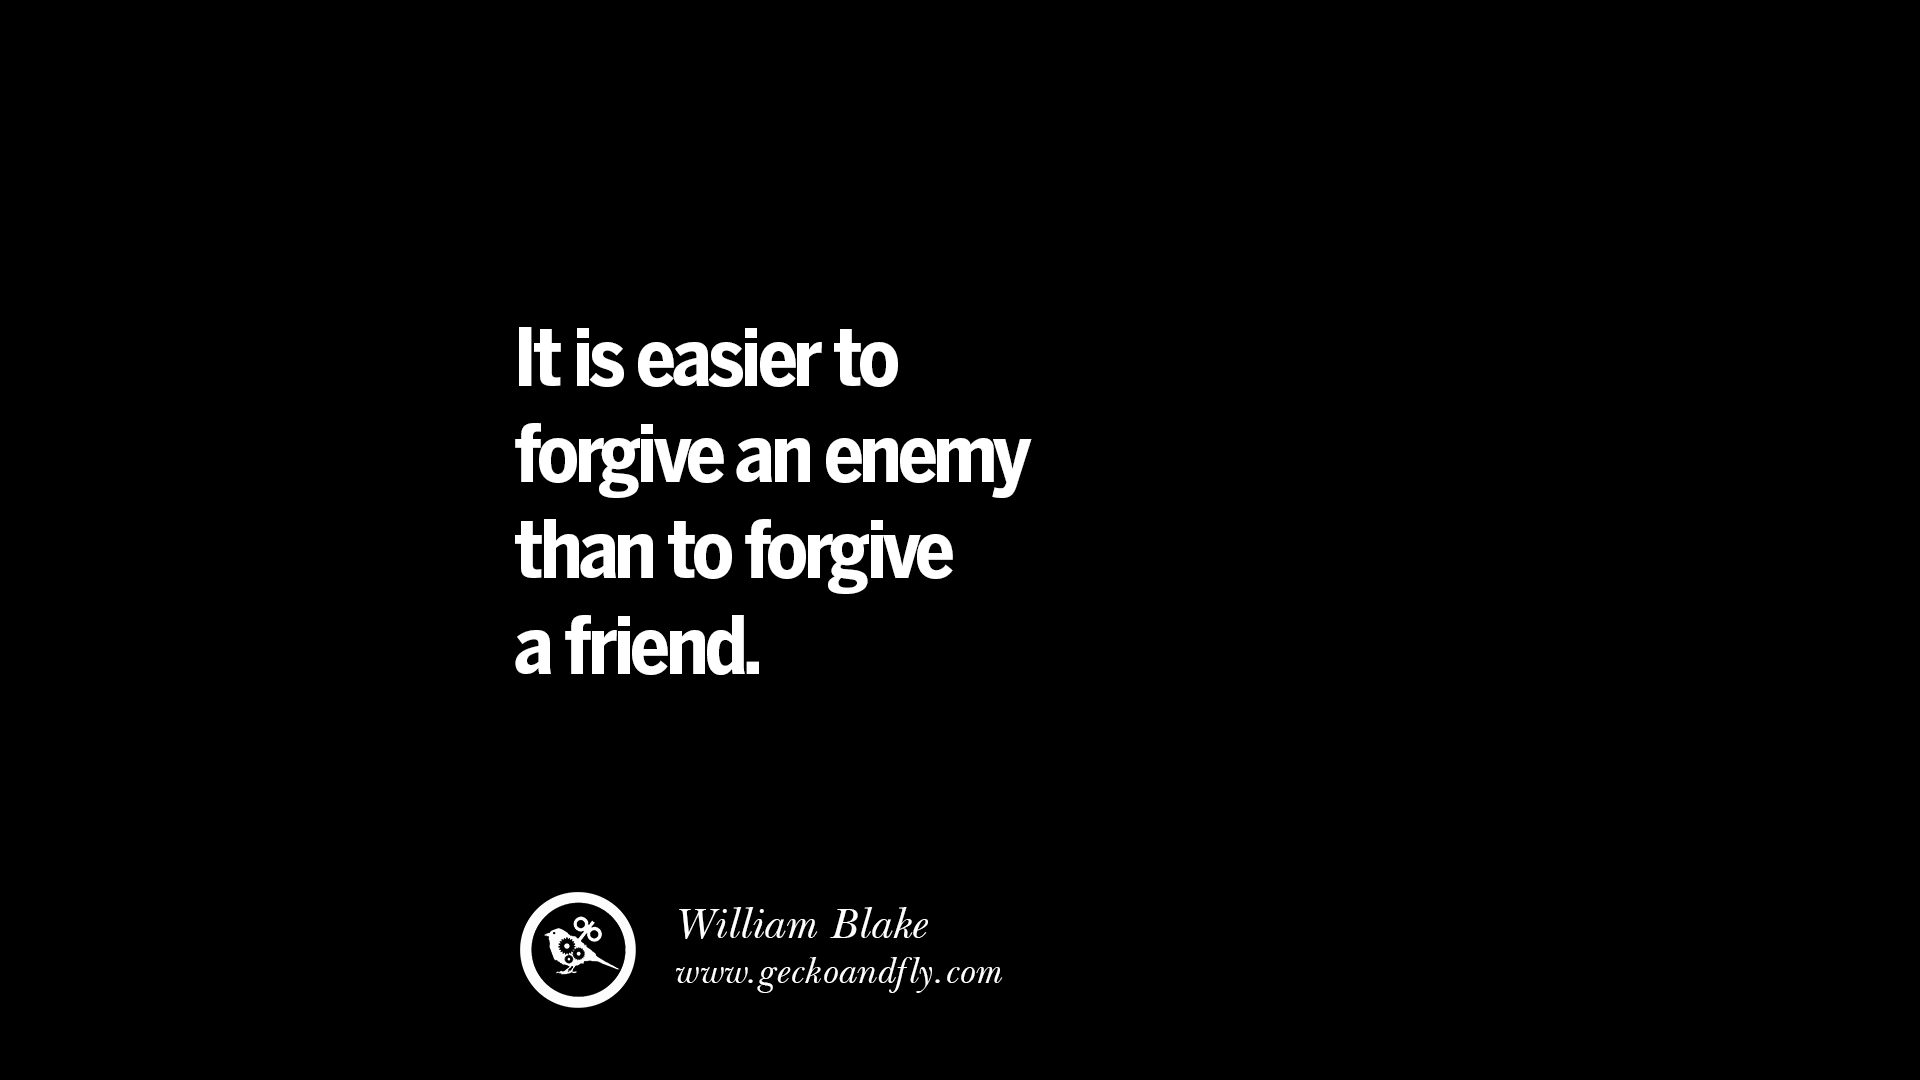 Inspirational Quotes About Friendship 25 Quotes On Friendship Trust Love And Betrayal  Geckoandfly 2018